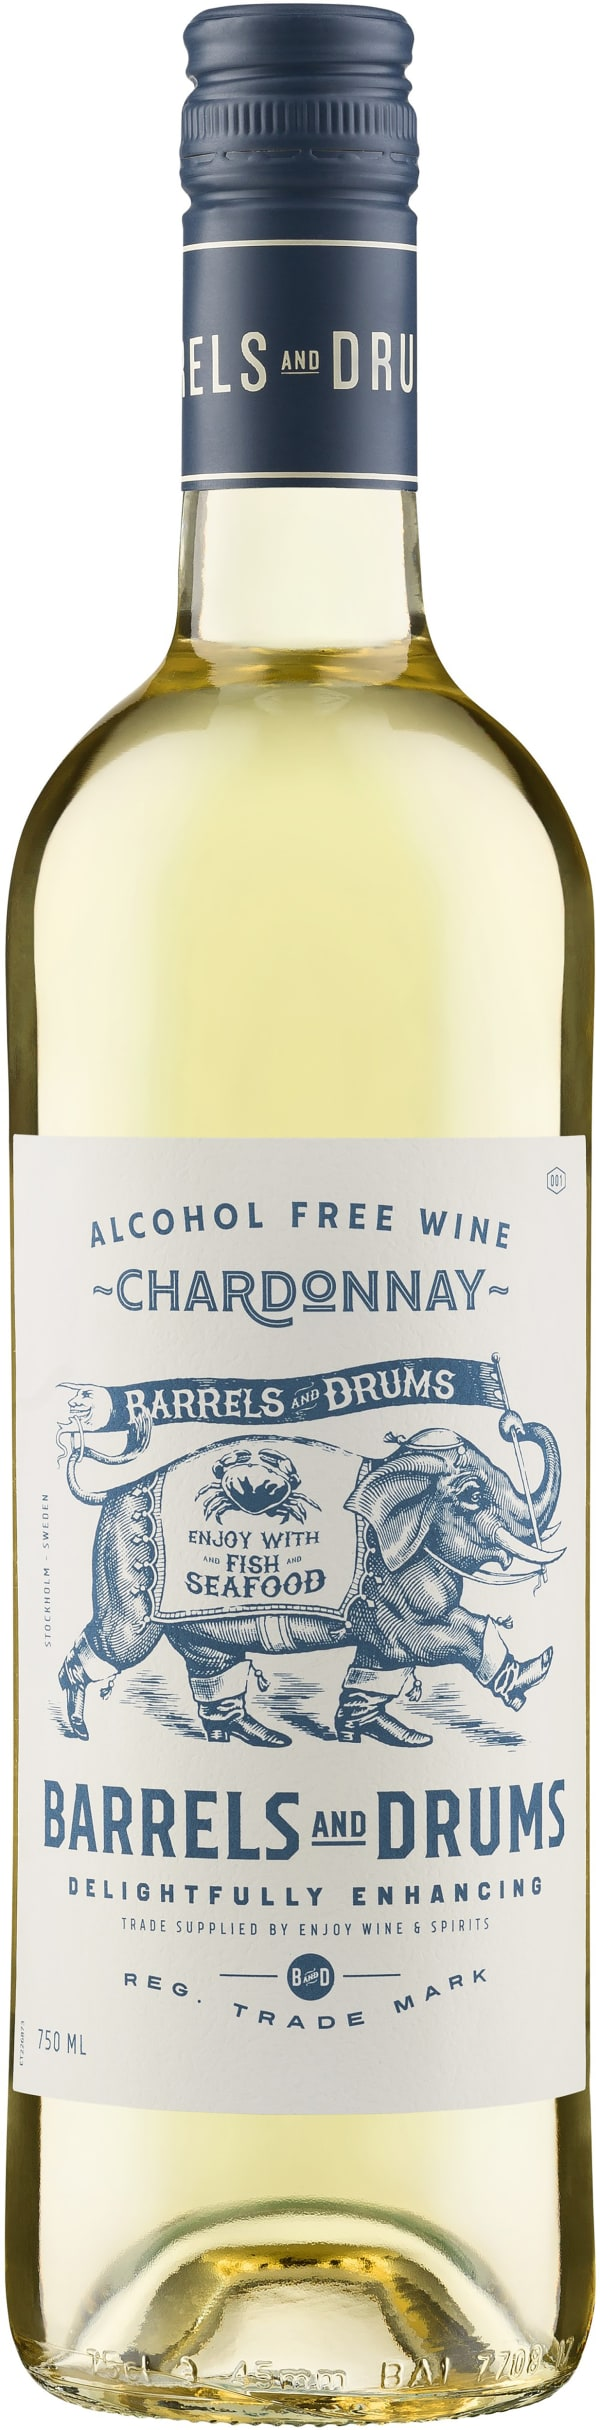 Barrels and Drums Chardonnay Alcohol Free